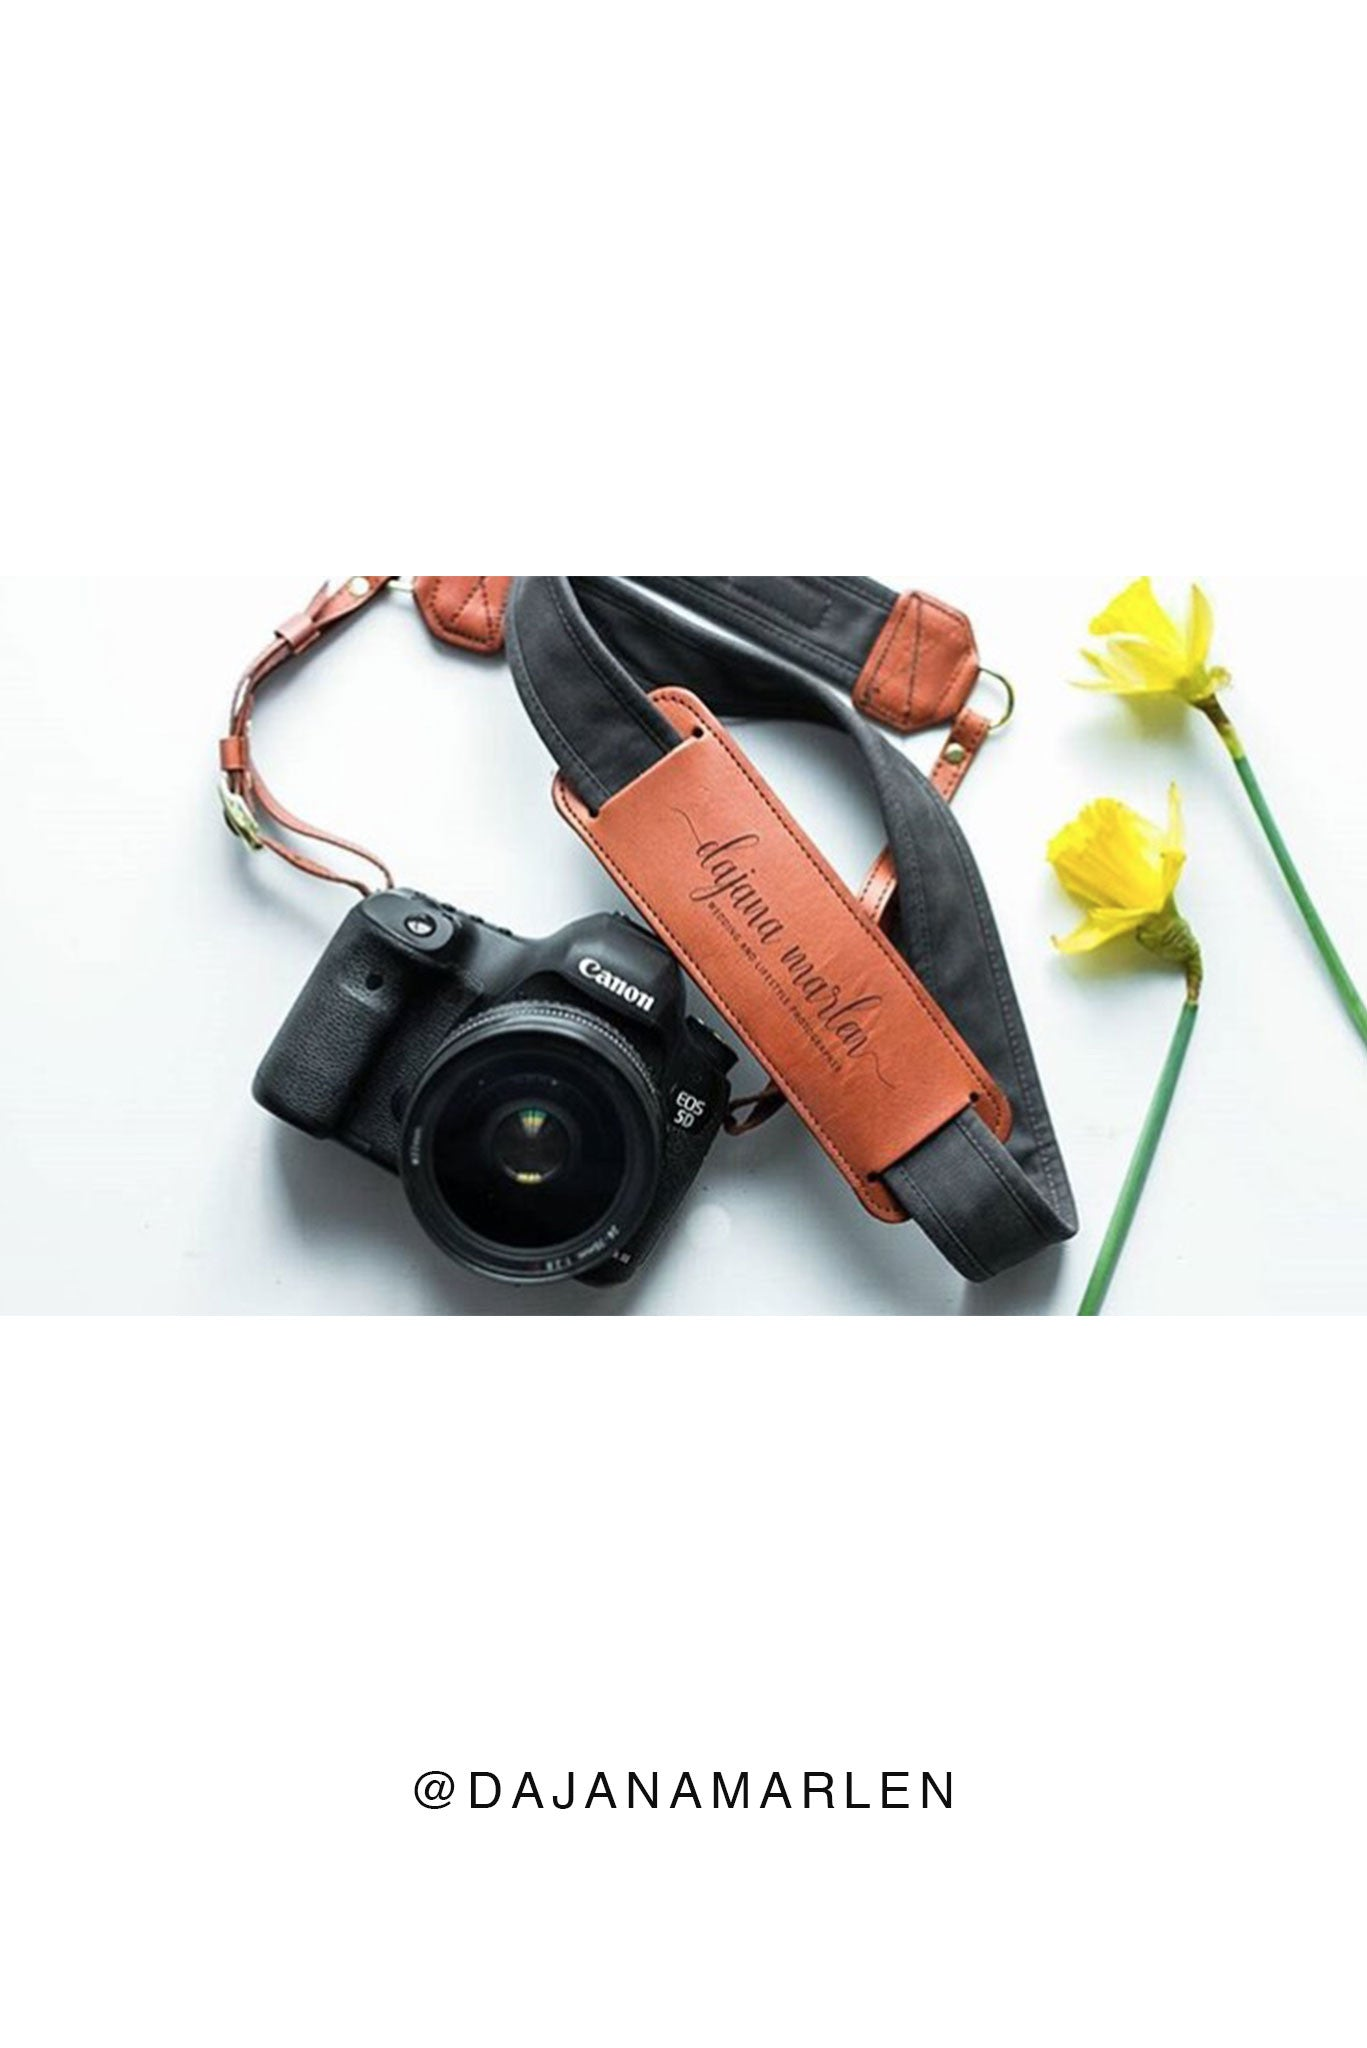 FOTO | Graphite Fotostrap - a charcoal gray canvas and genuine leather camera strap that can be personalized with a monogram or business logo, making it the perfect personalized gift!